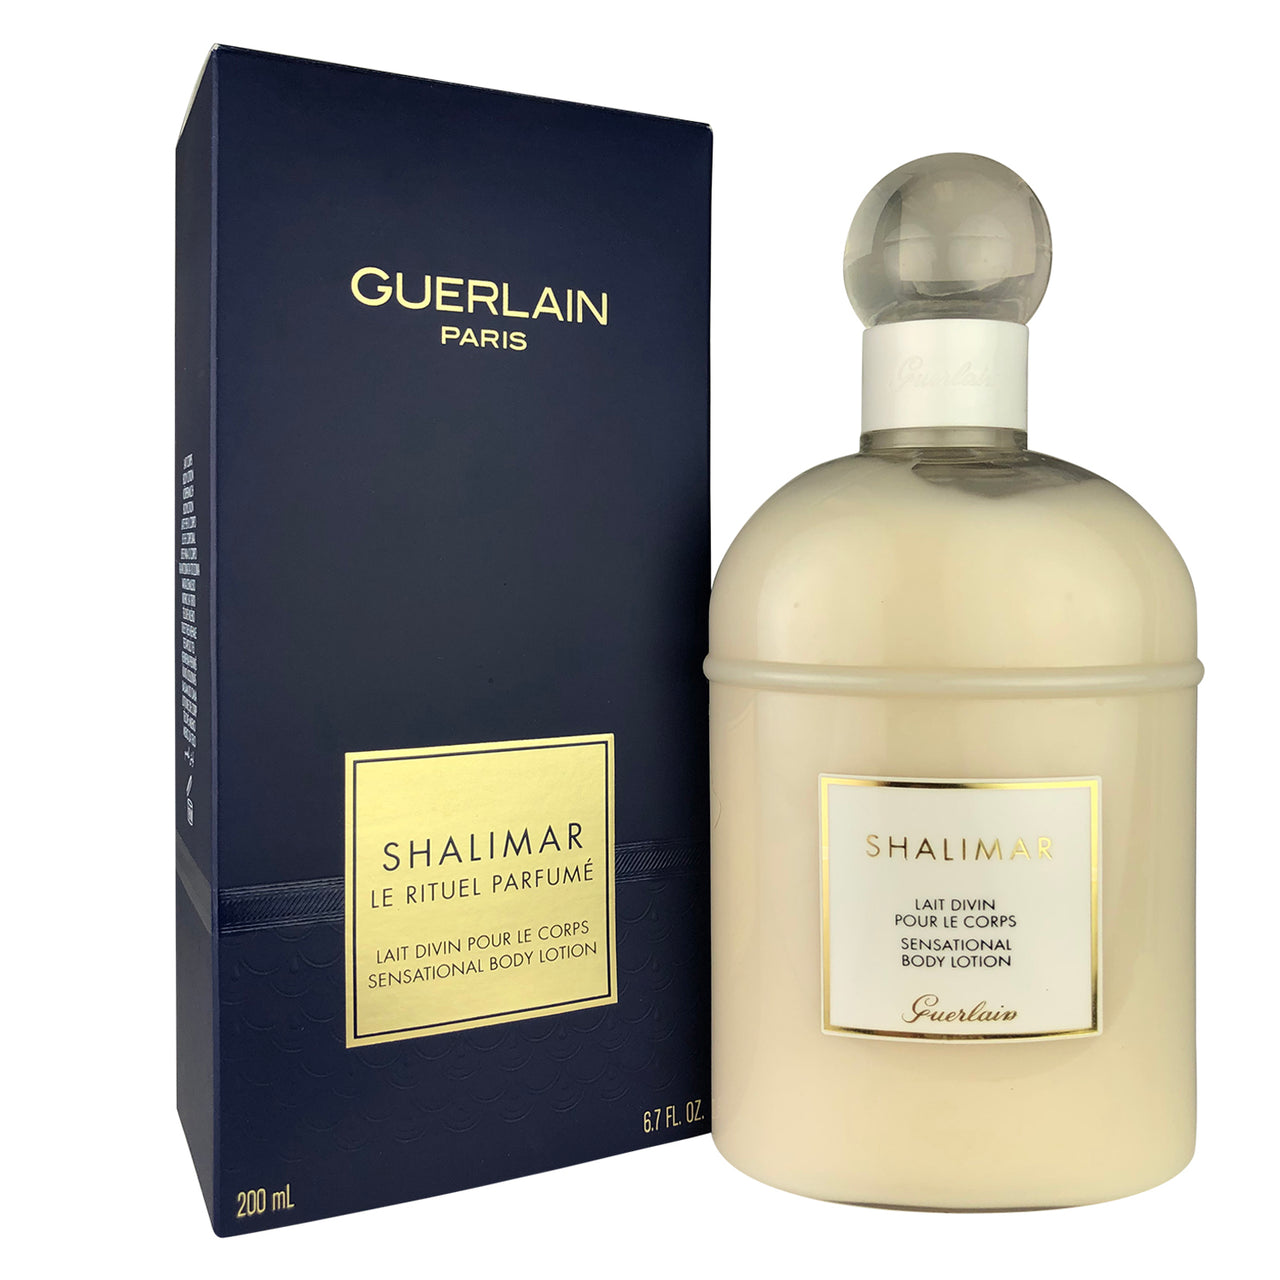 Shalimar for Women by Guerlain 6.7 OZ Body Lotion